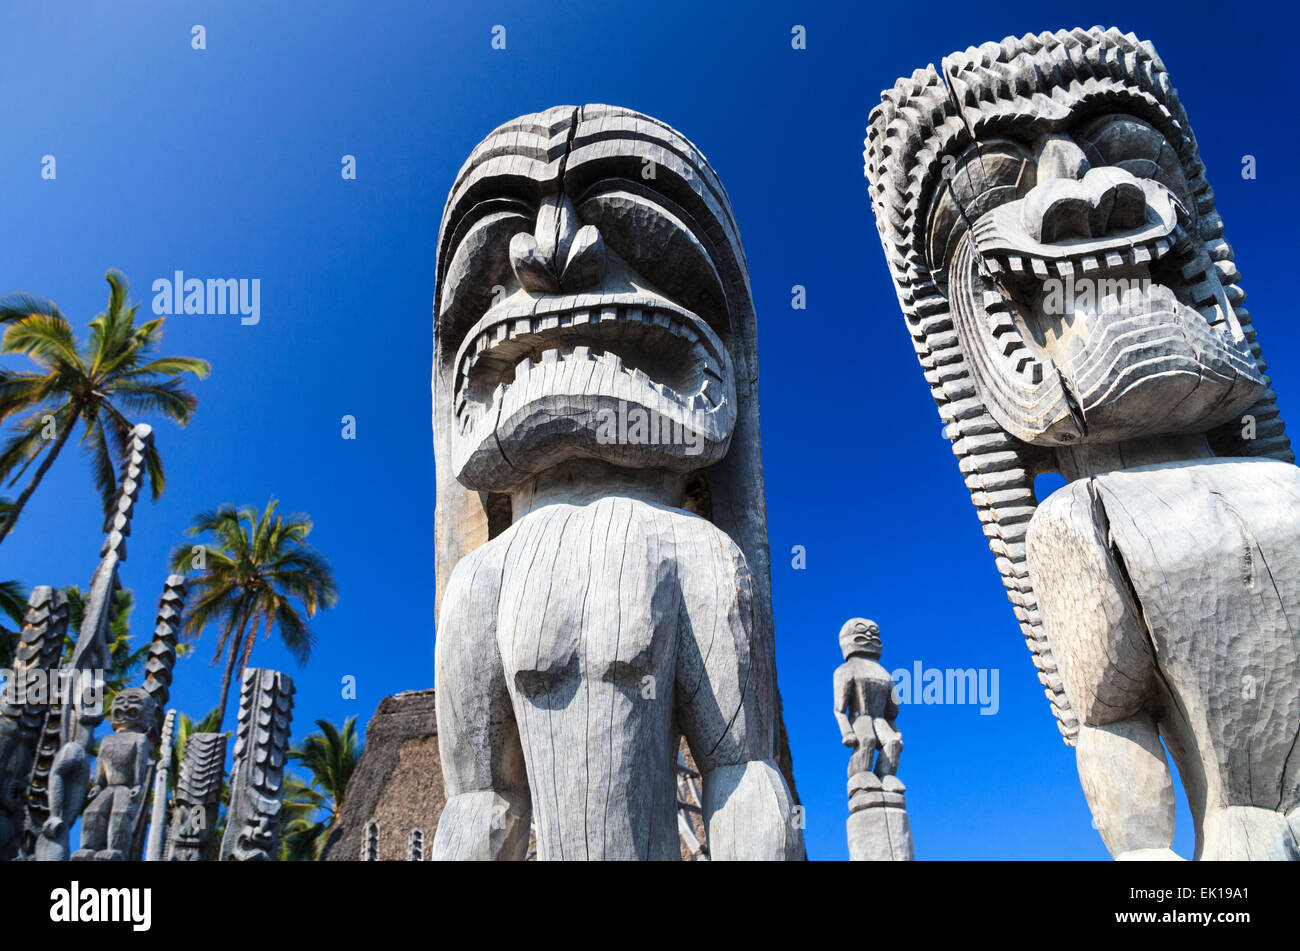 Carved figures at Puuhonua O Honaunau National Historical Park on the Big Island - Stock Image